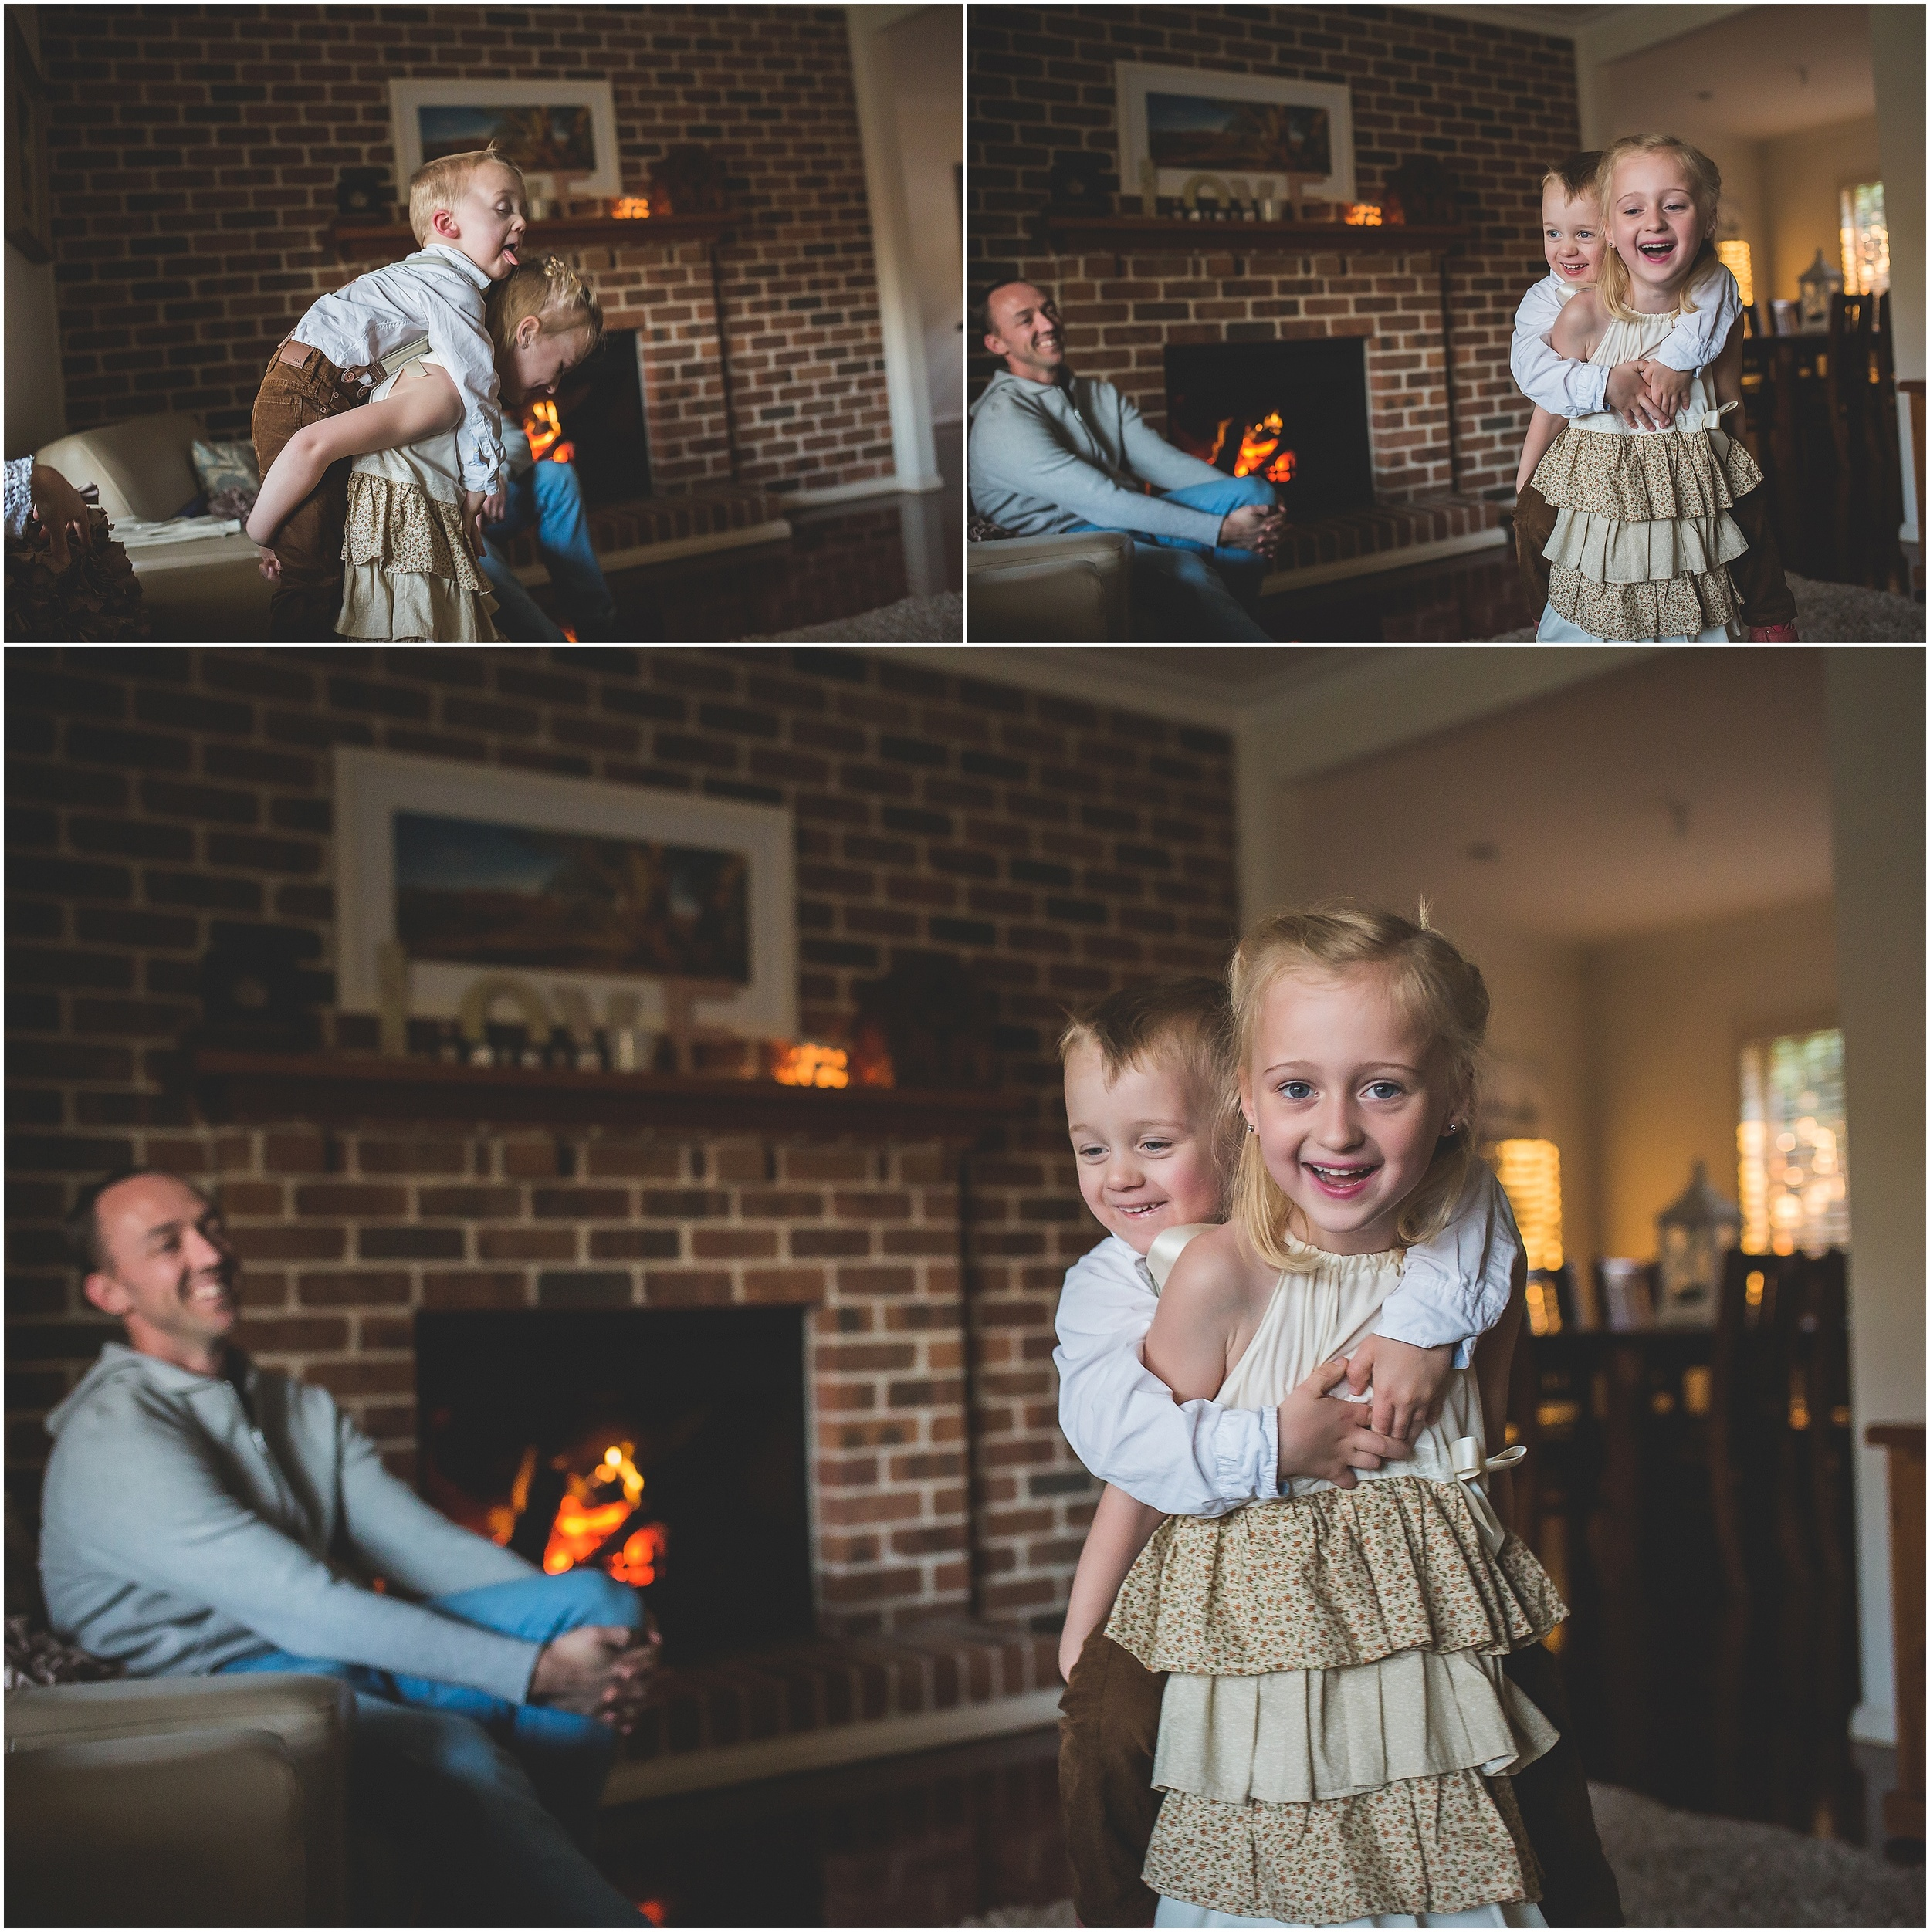 Hills District Family Lifestyle Photographer